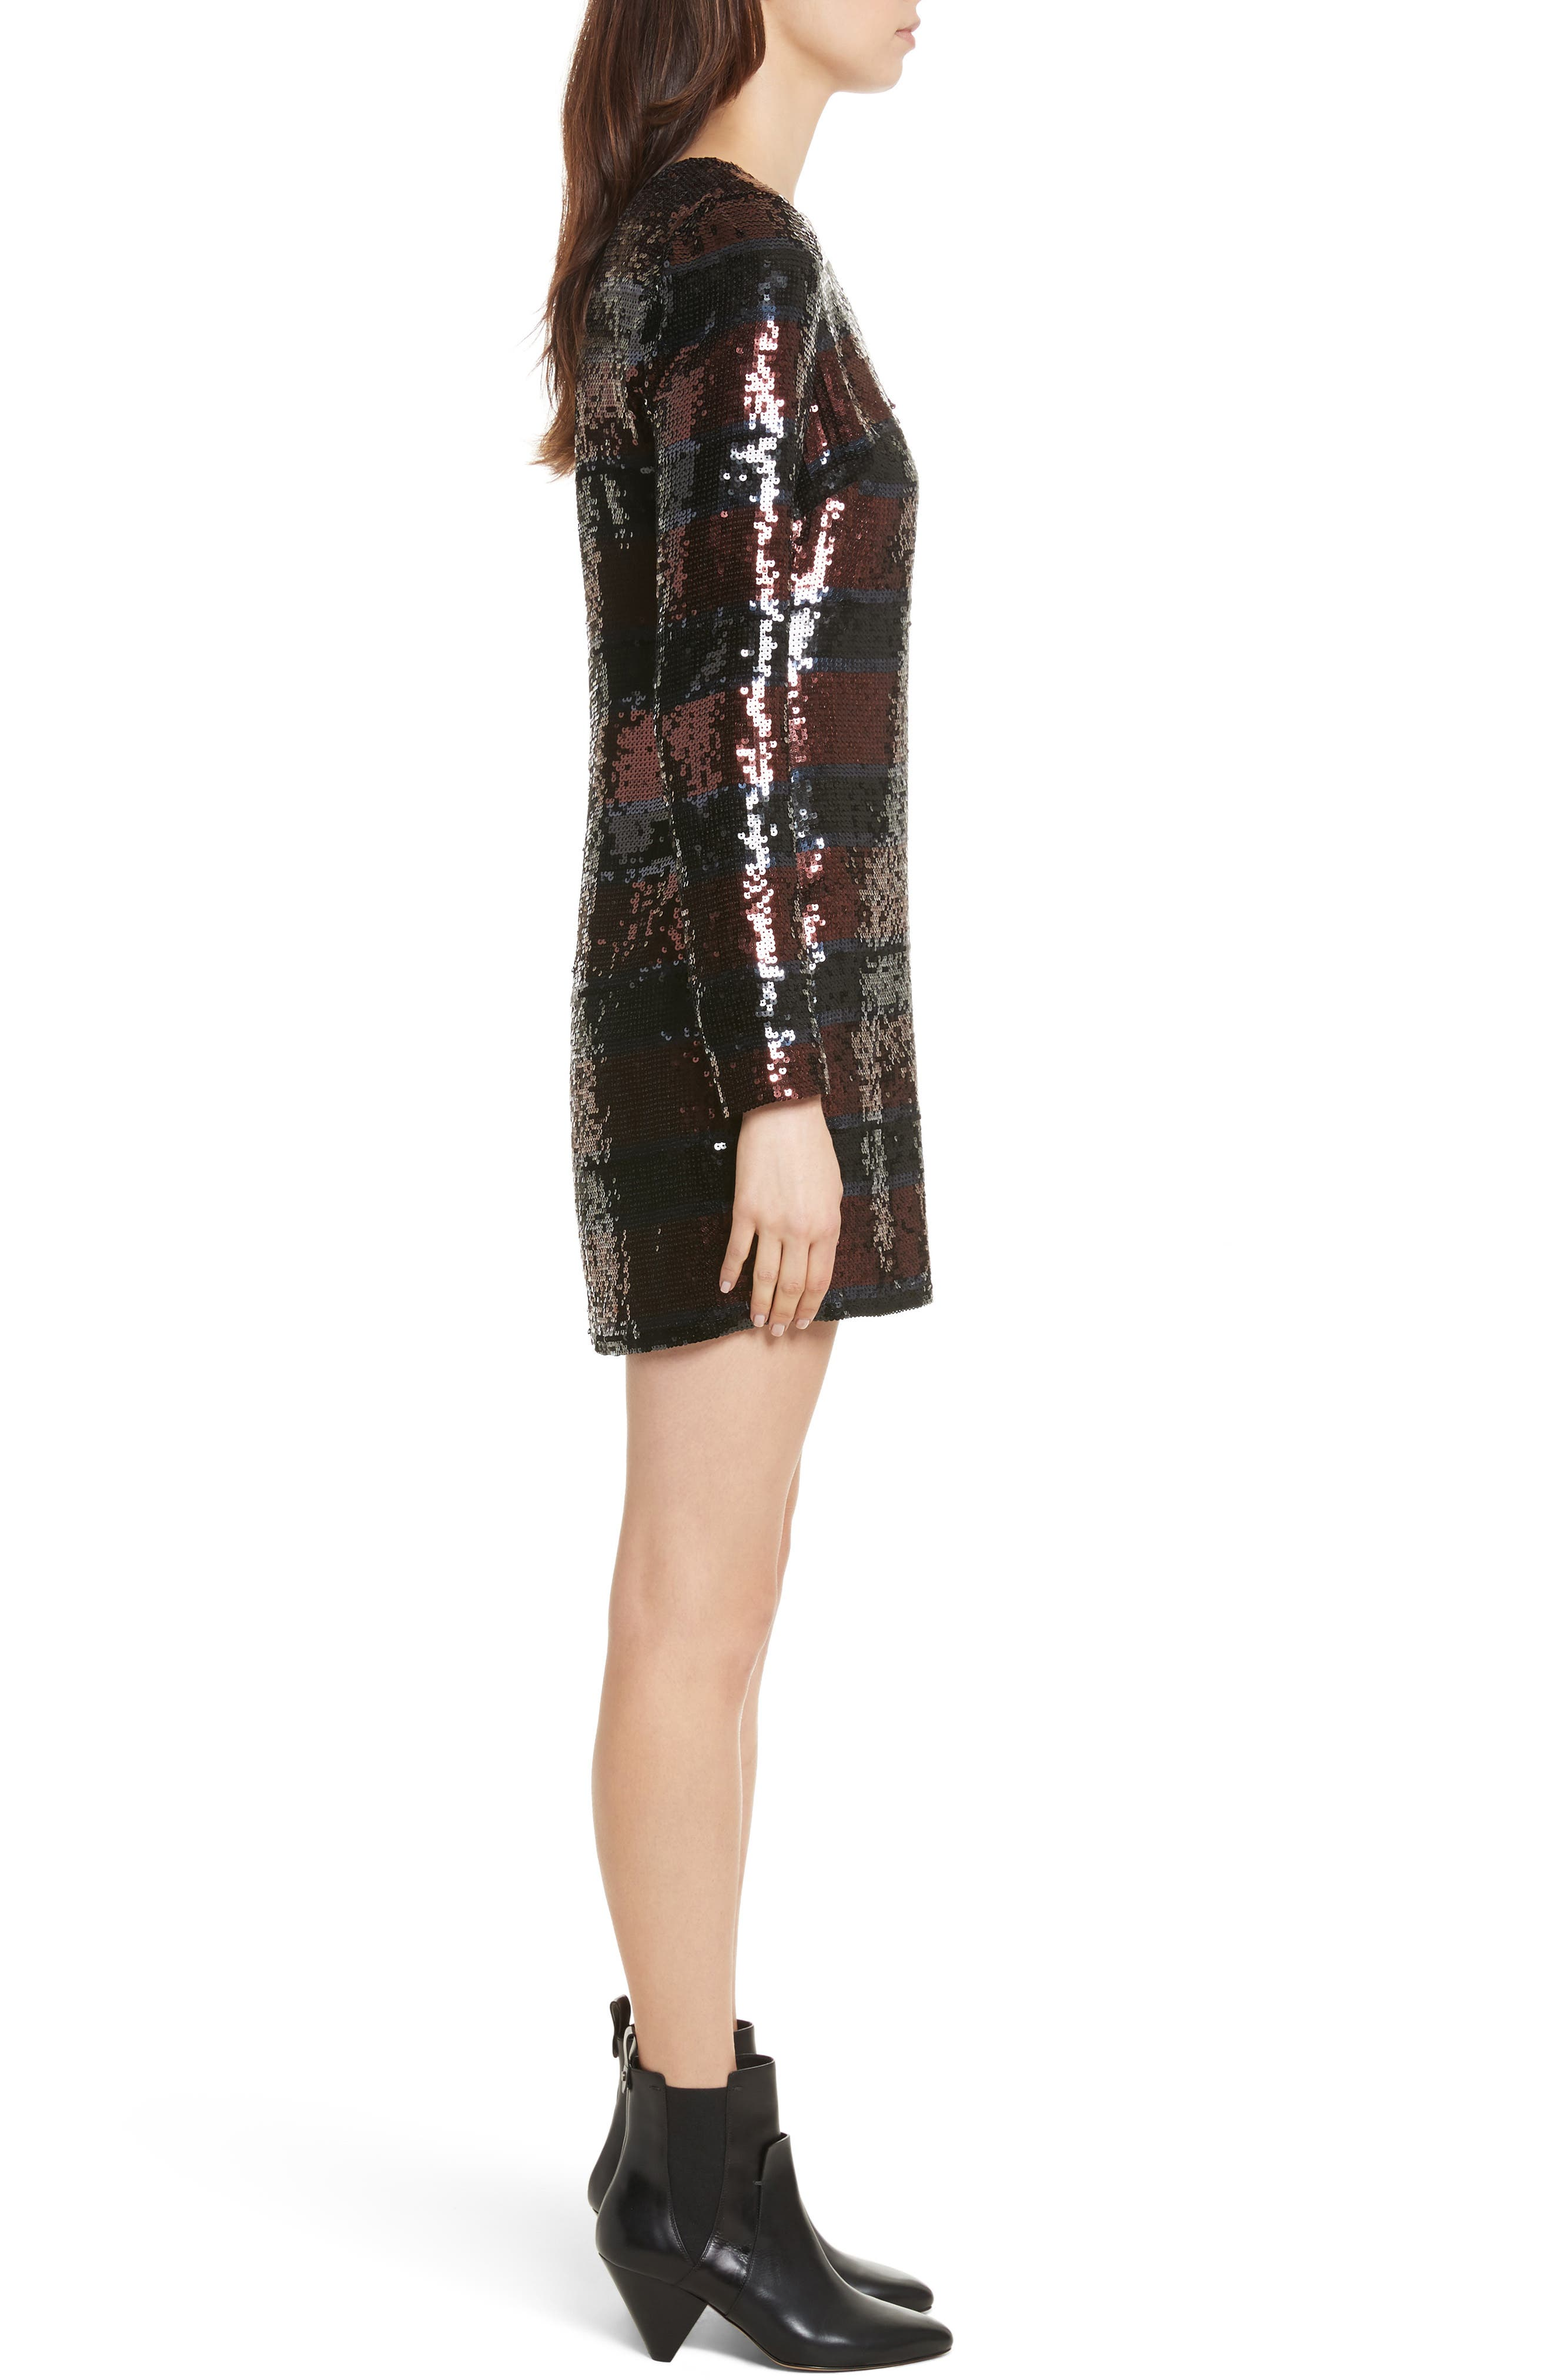 Breakers Sequin Dress,                             Alternate thumbnail 3, color,                             Dark Red/ Black